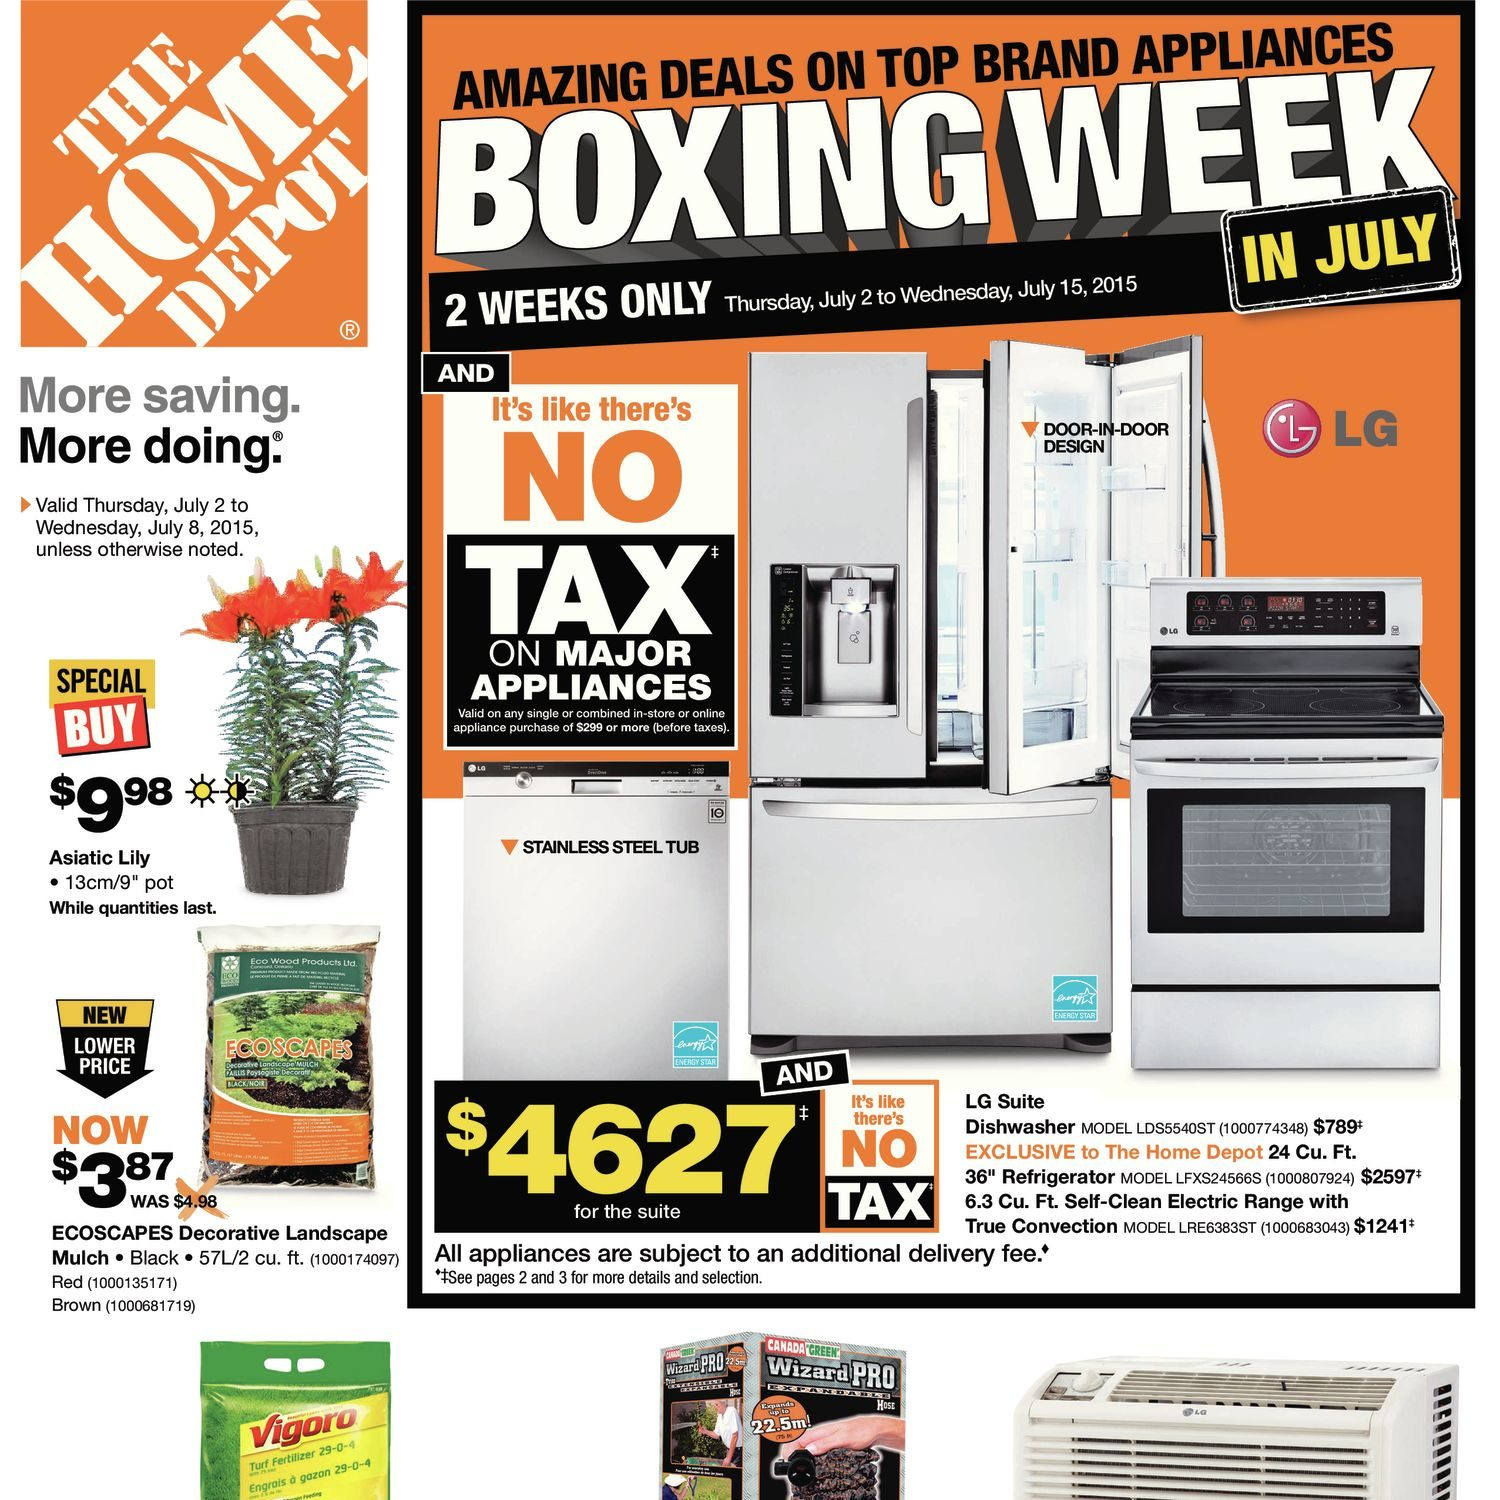 6d6273fcf2 Home Depot Weekly Flyer - Weekly - Boxing Week in July - Jul 2 – 8 -  RedFlagDeals.com